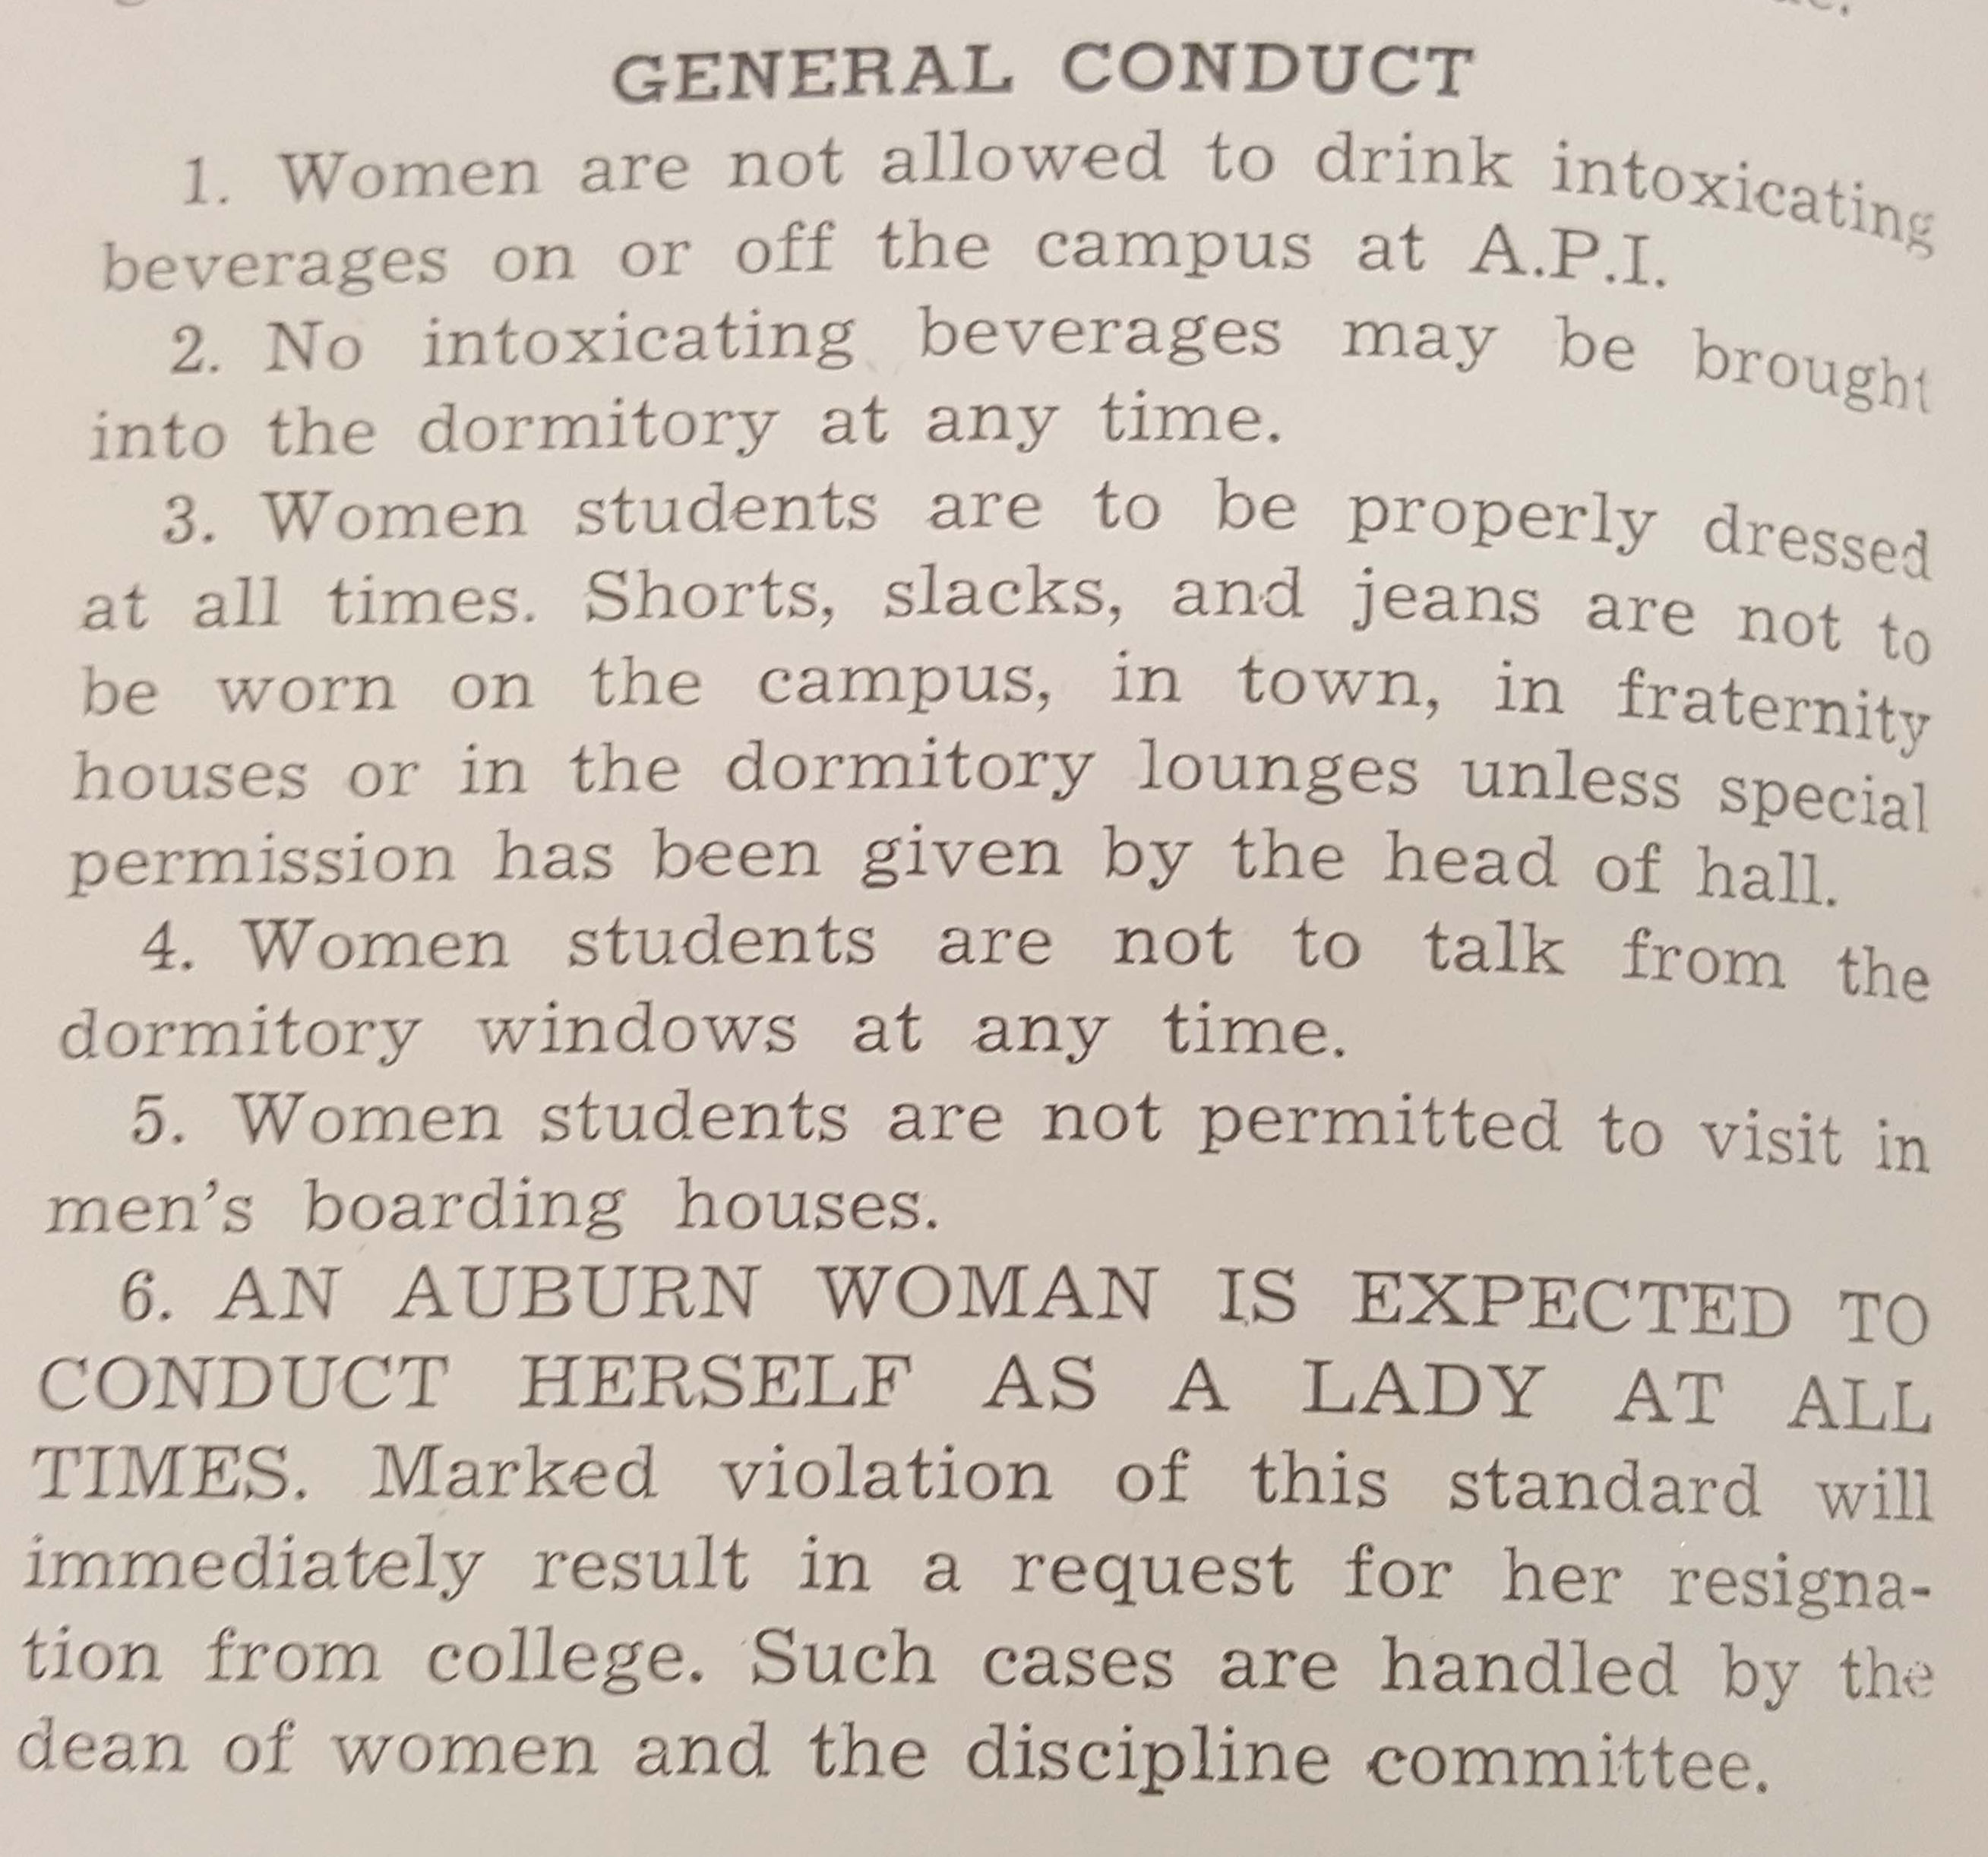 1947 General Conduct